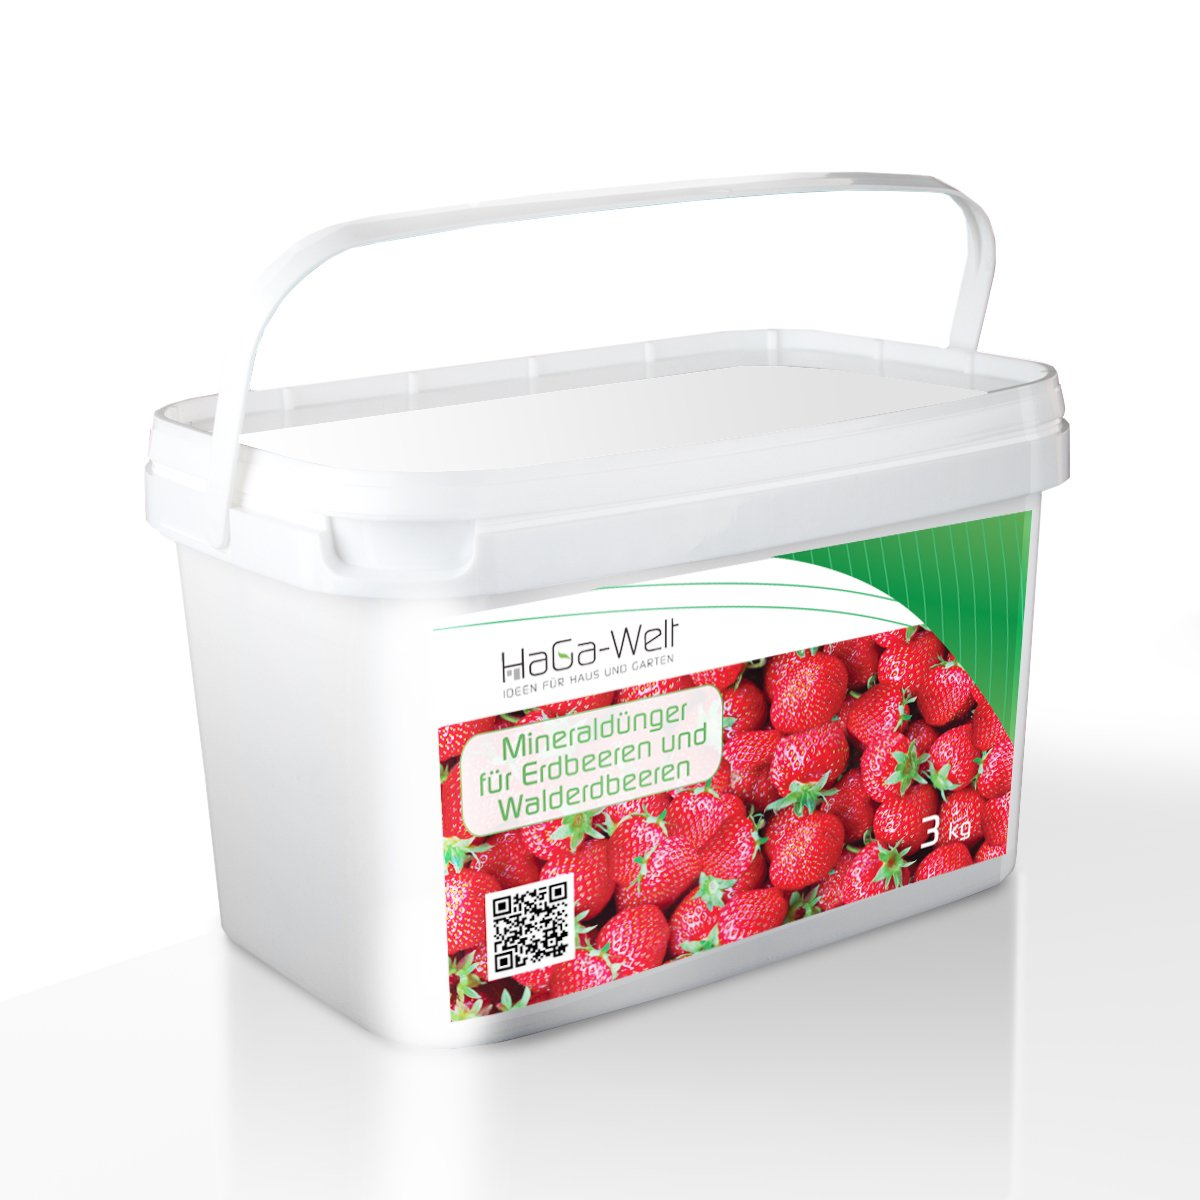 Mineral Fertiliser for Strawberries and Wild Strawberries Fruit Fertiliser 3 kg Terahaga/Planta